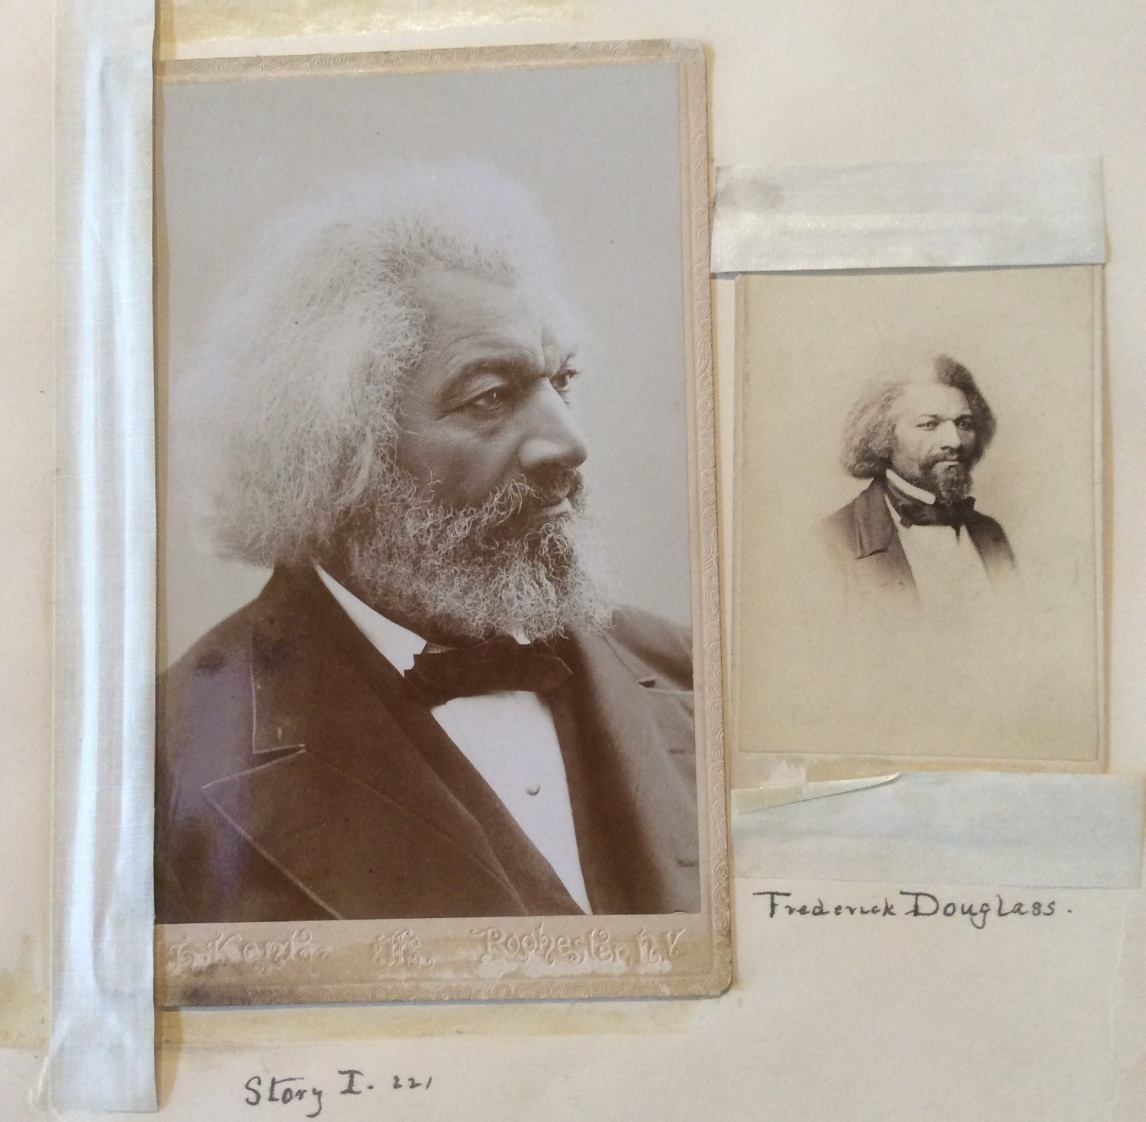 lynn massachusetts ordinary philosophy two portraits of frederick douglass from the hutchinson family scrapbook